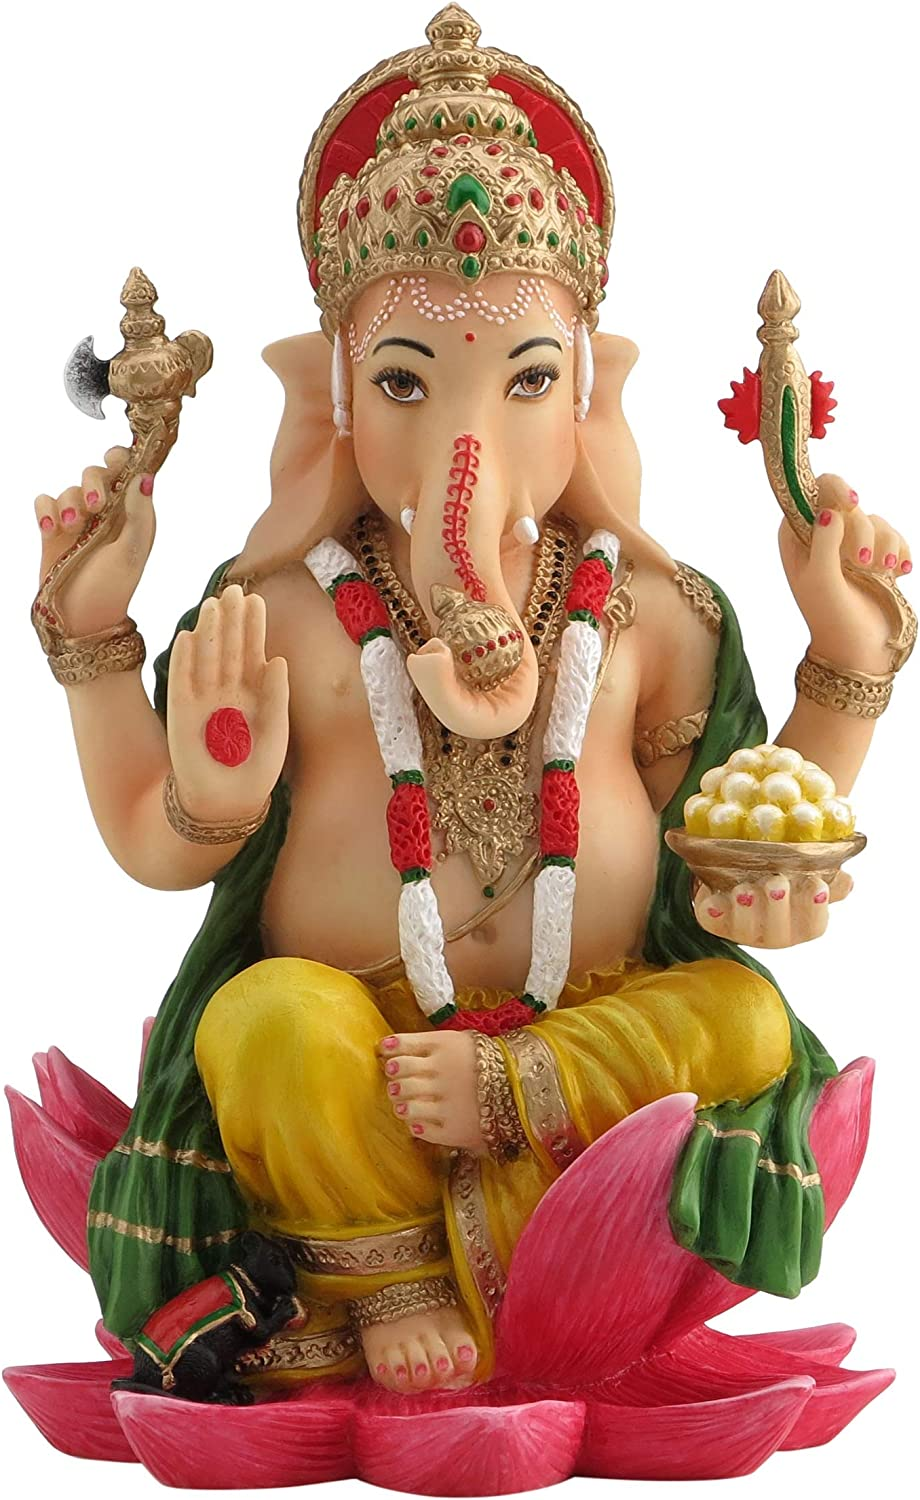 Ganesh (Ganesha) Hindu Elephant God of Success Statue, 7 1 4-inch Multi-colord